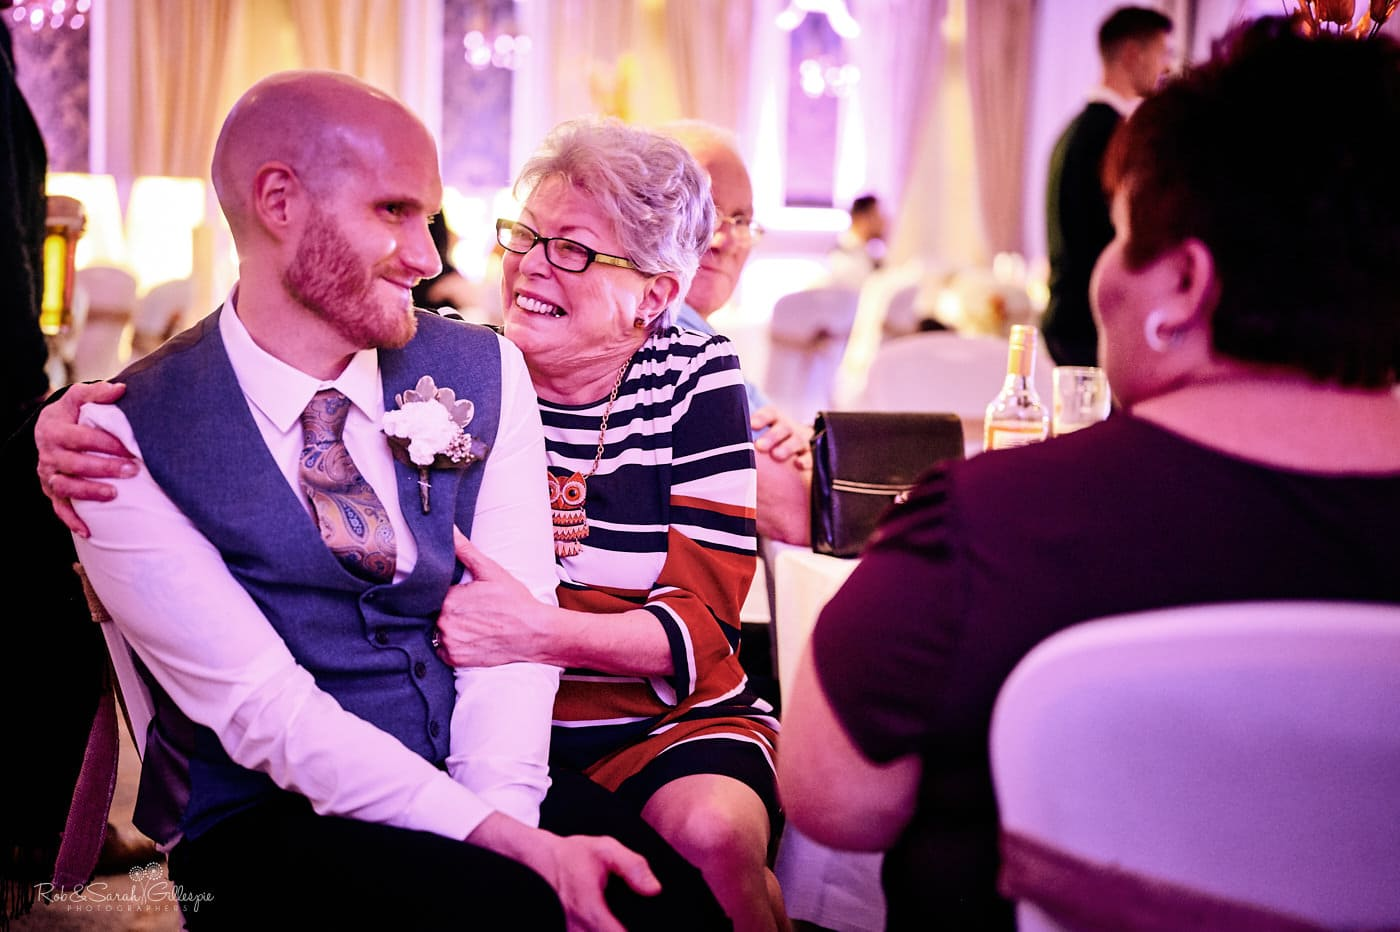 Wedding guests relax and chat at reception party